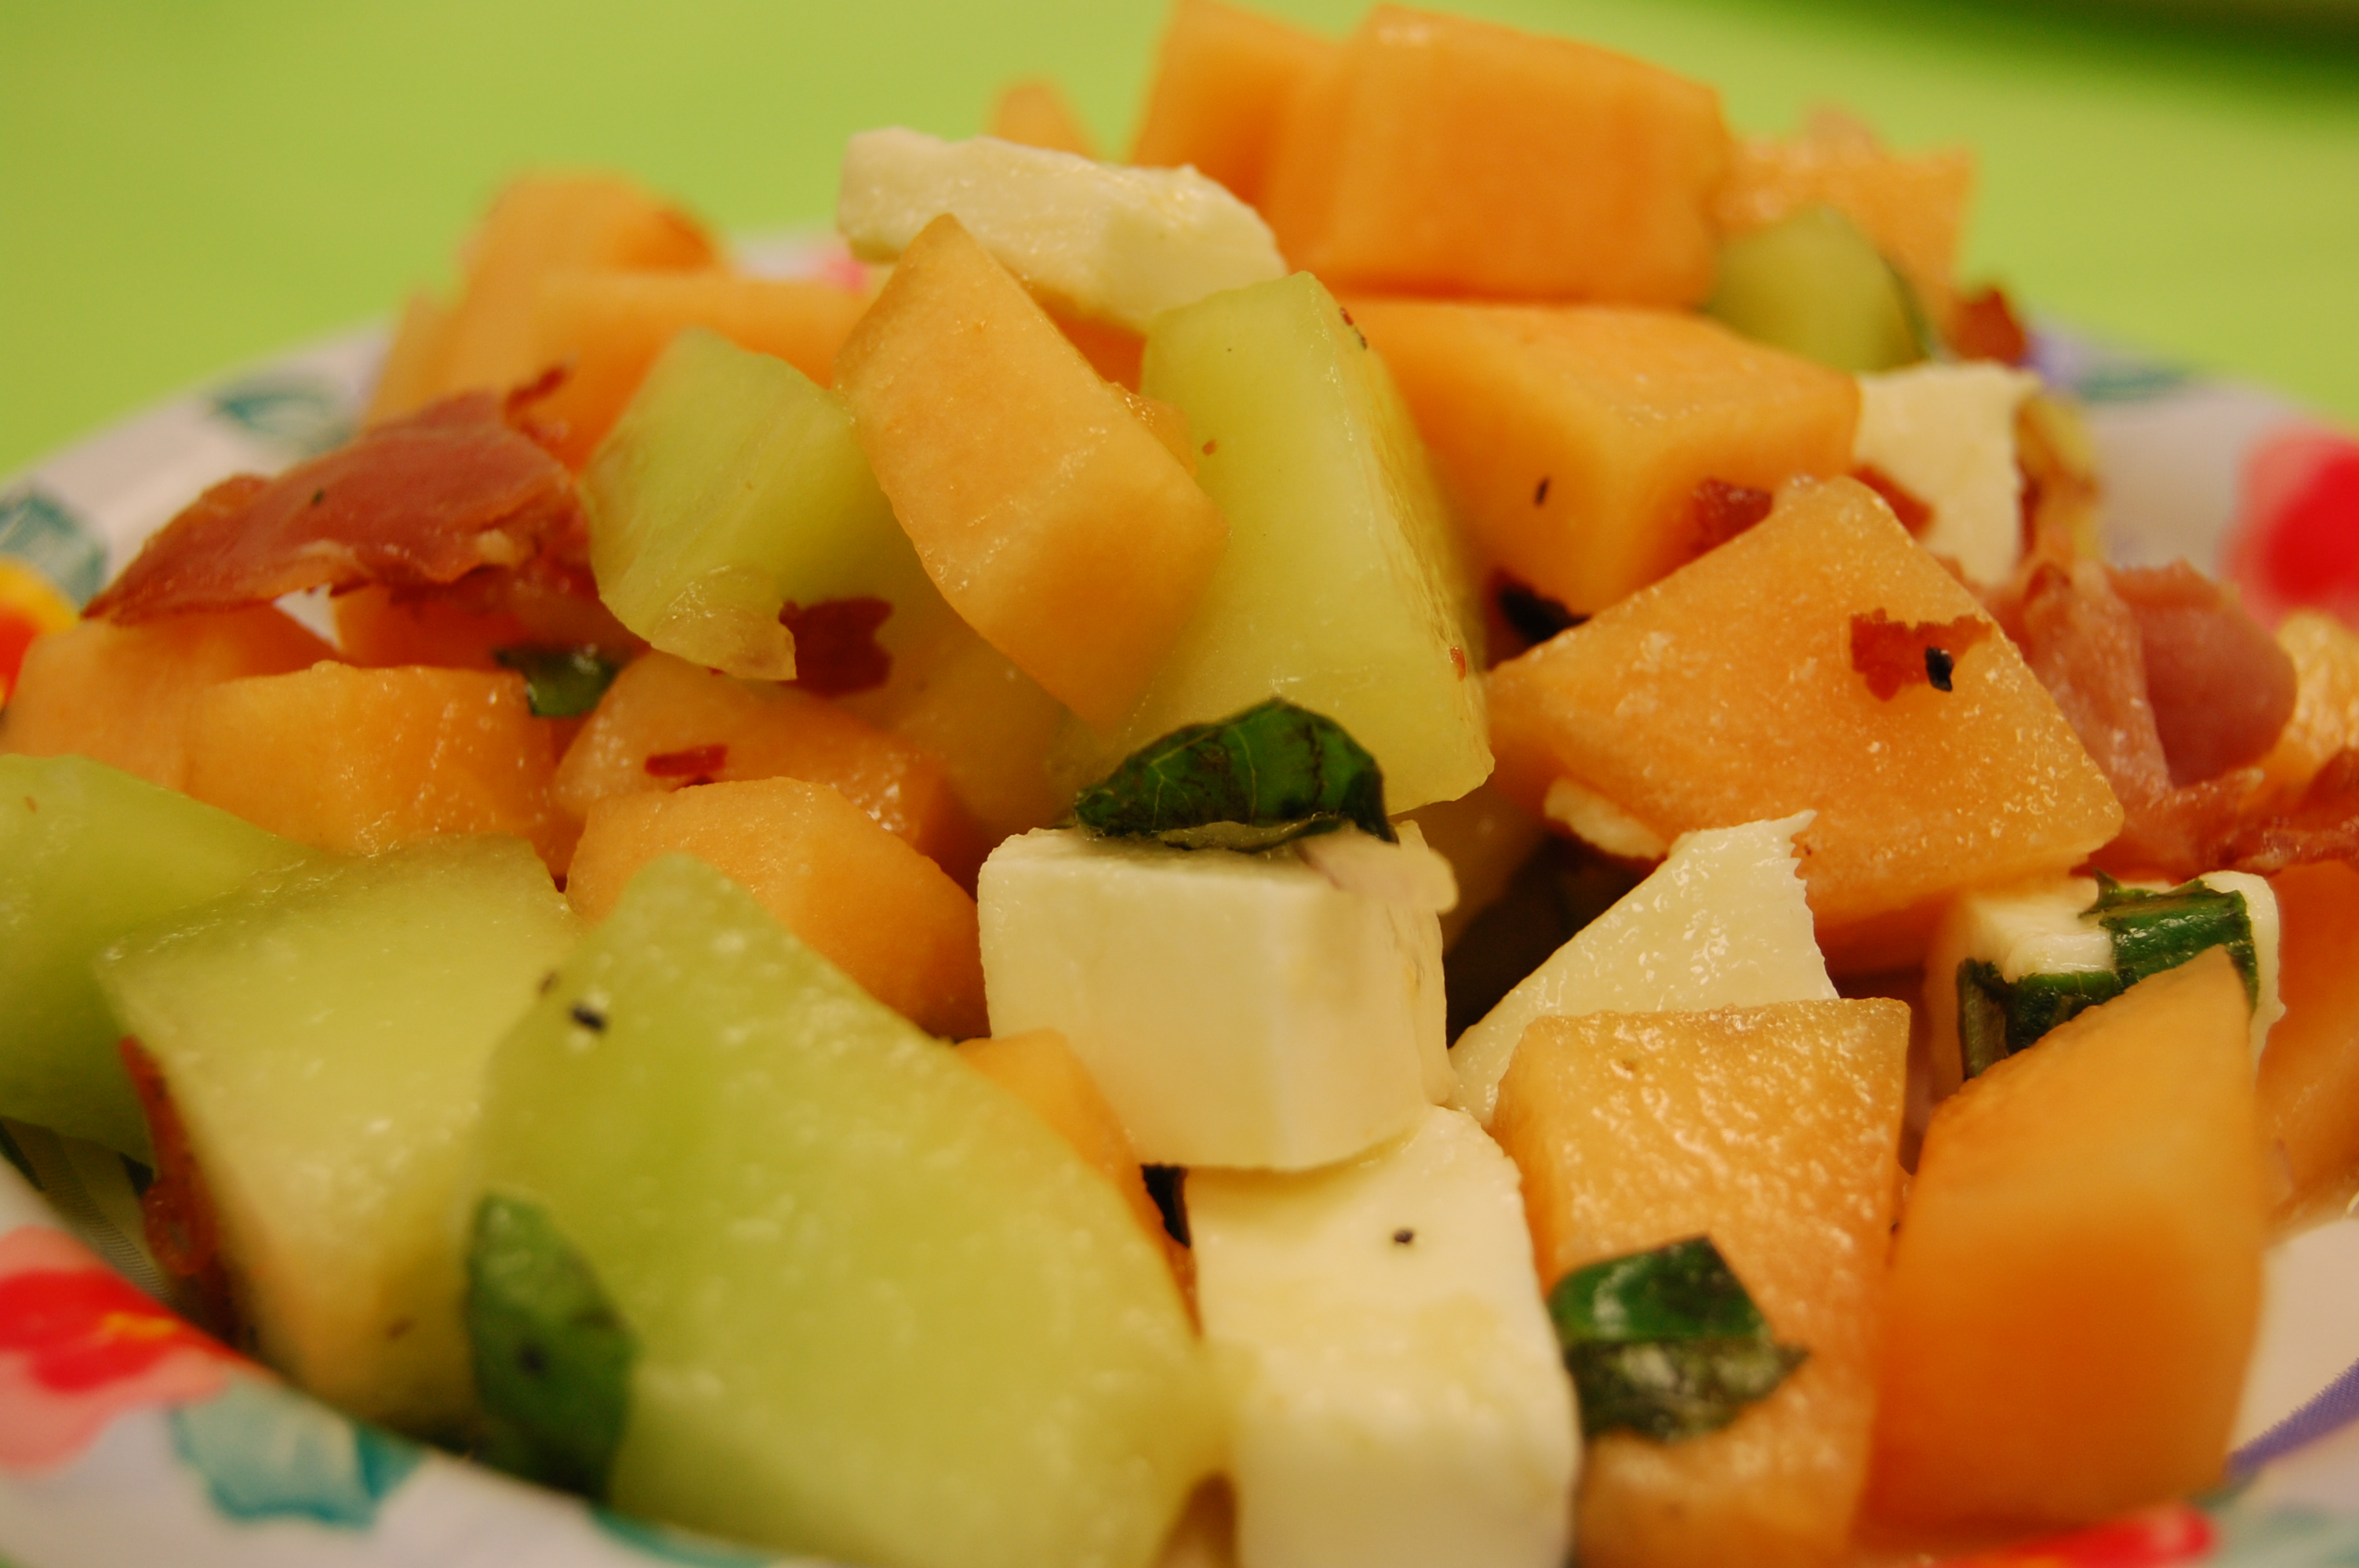 Melon and Mozzarella Salad